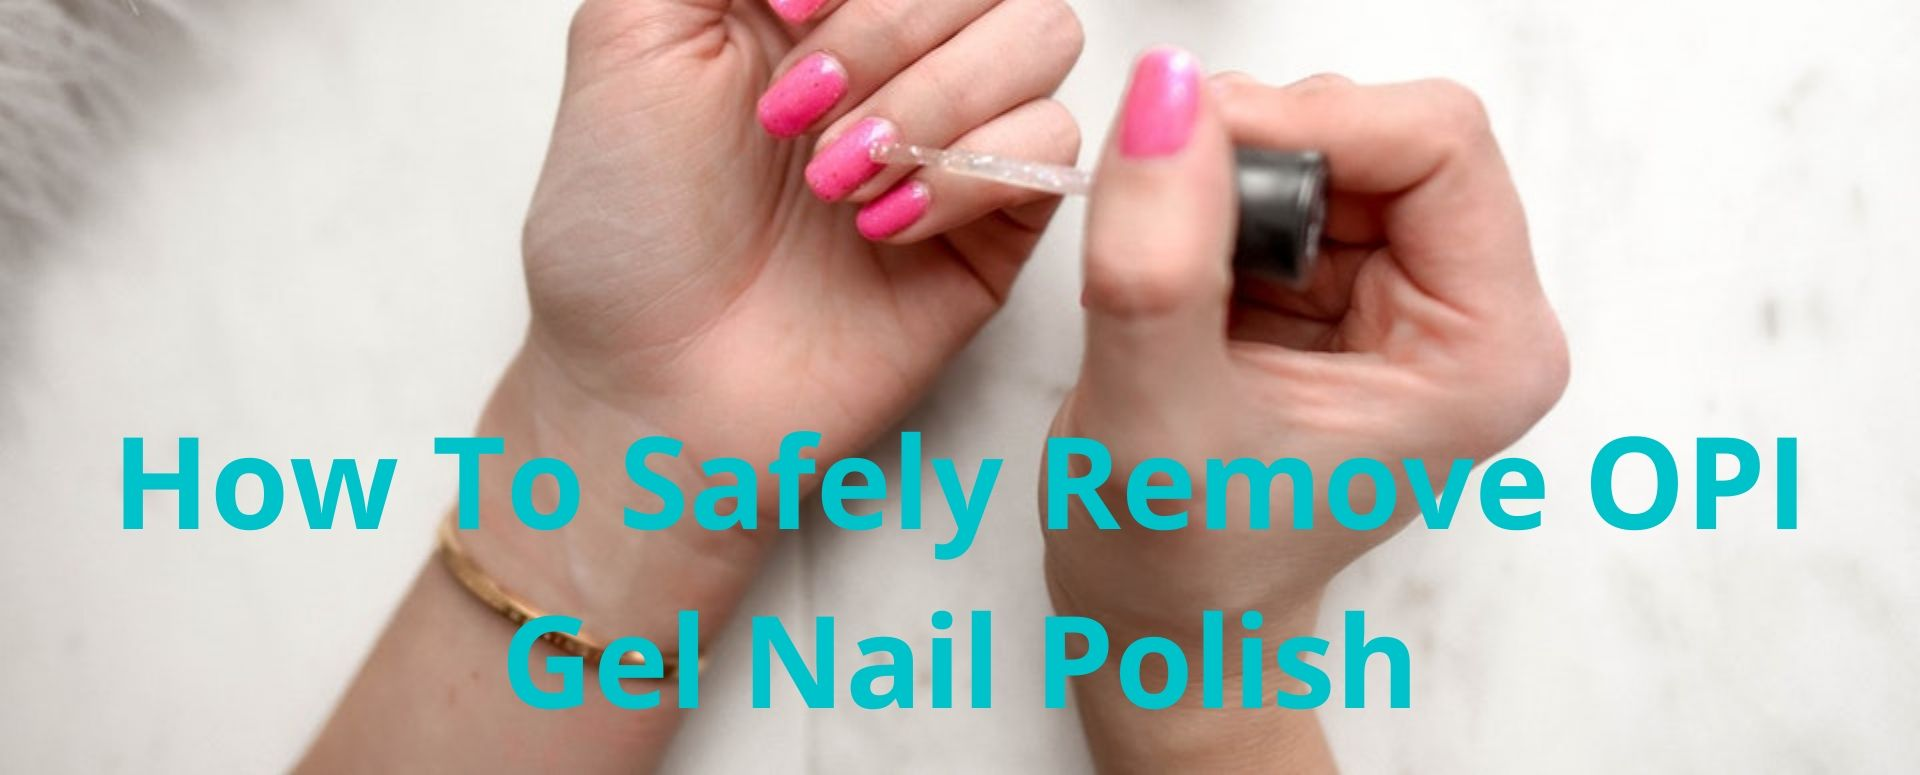 Remove gel nail polish at home safely during the lockdown